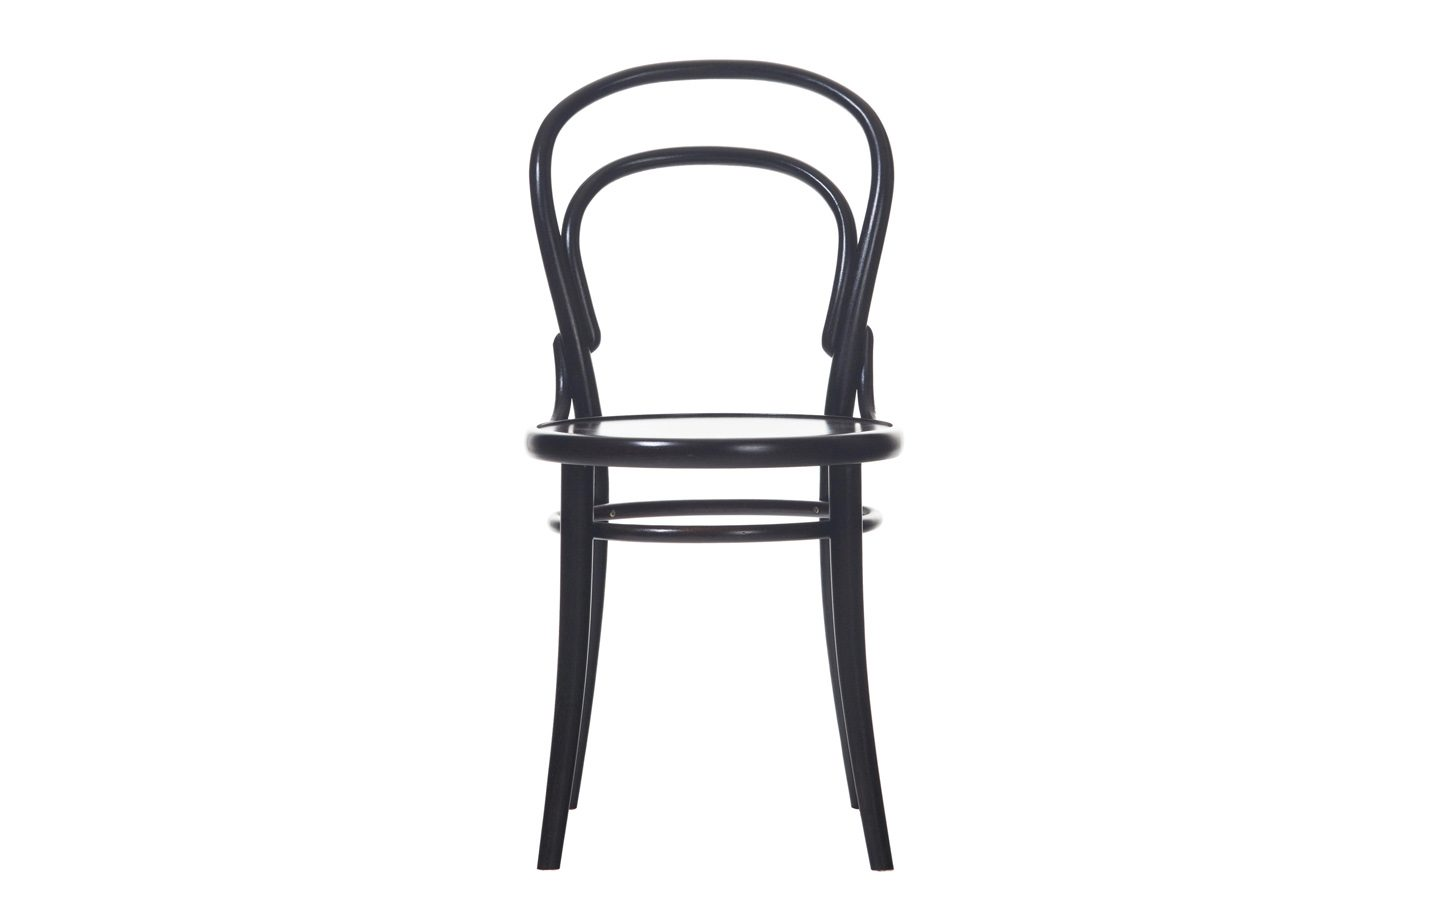 14-dining-chair-bent-wood-Ton-02